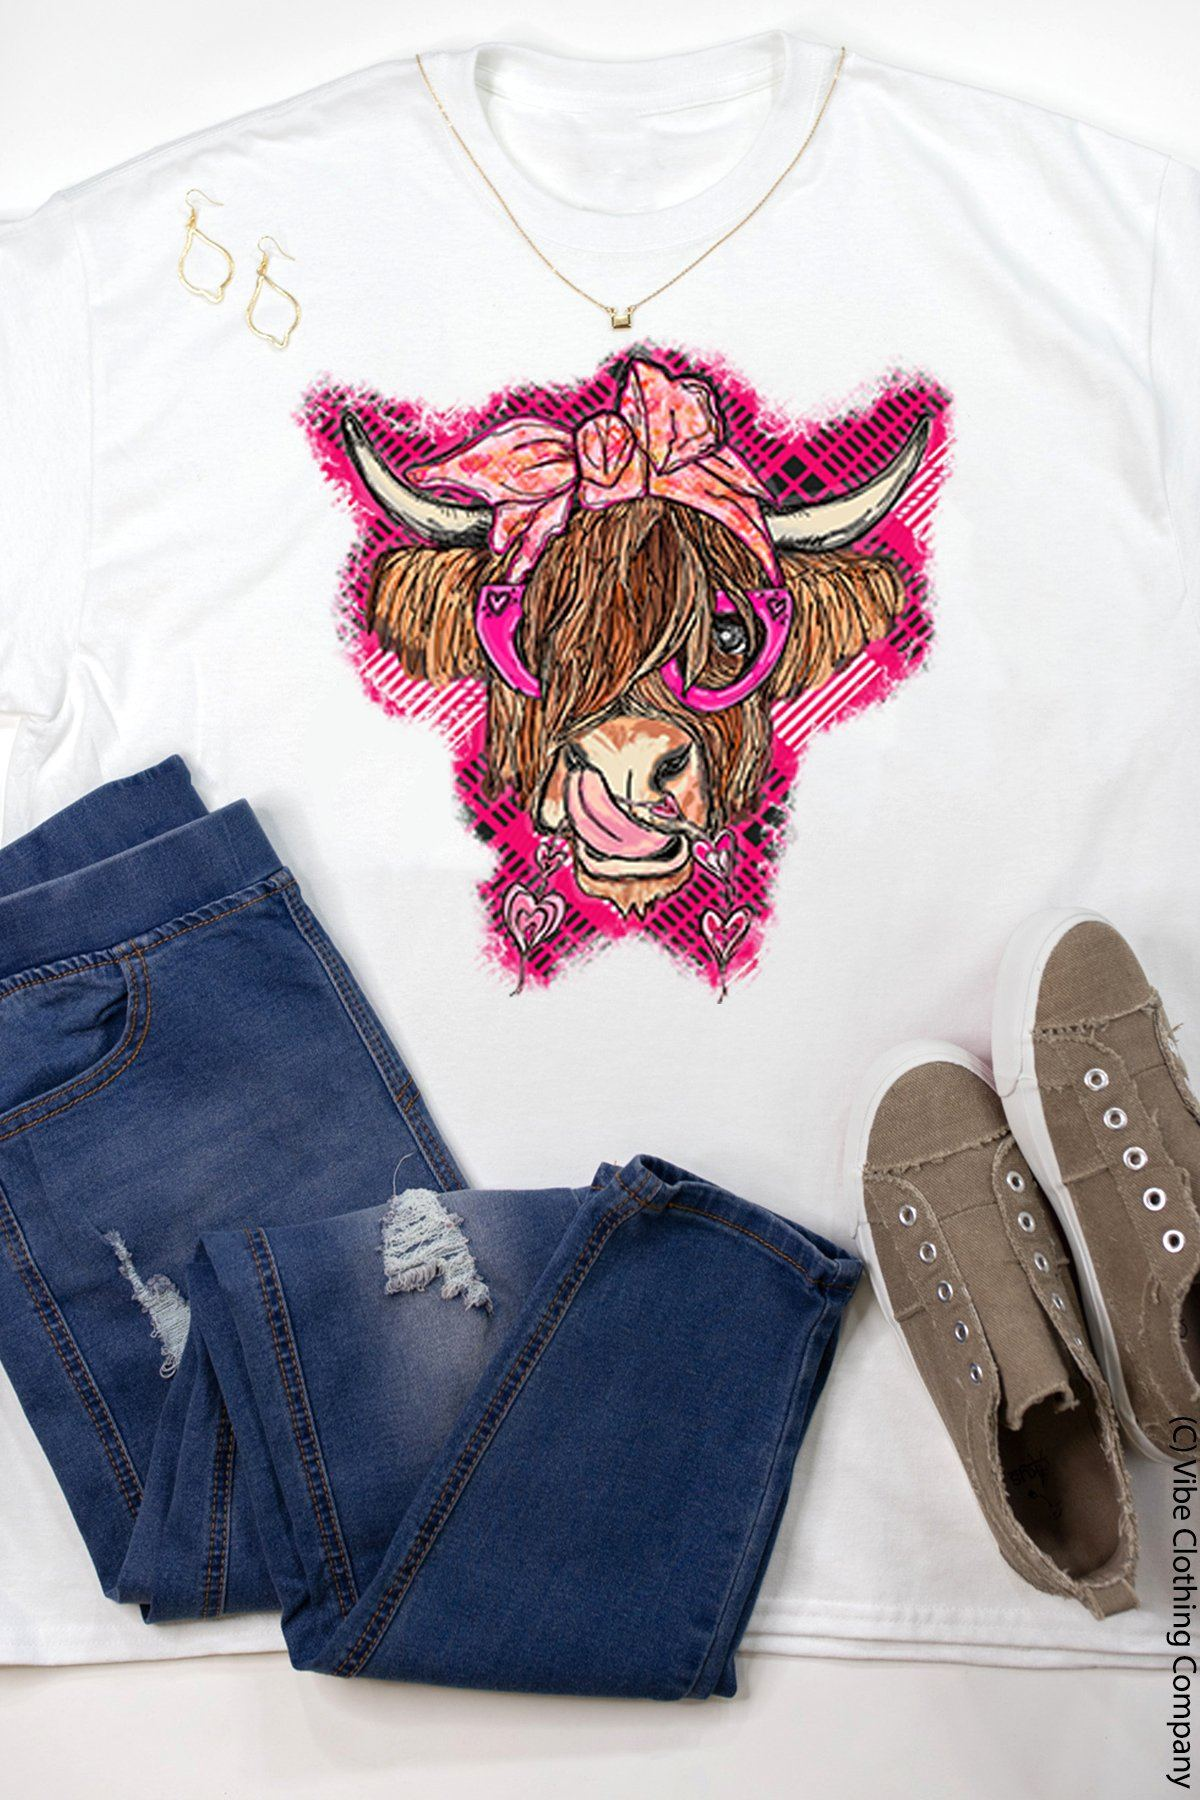 Uptown Heifer Graphic Tee graphic tees Mark tee 2X White